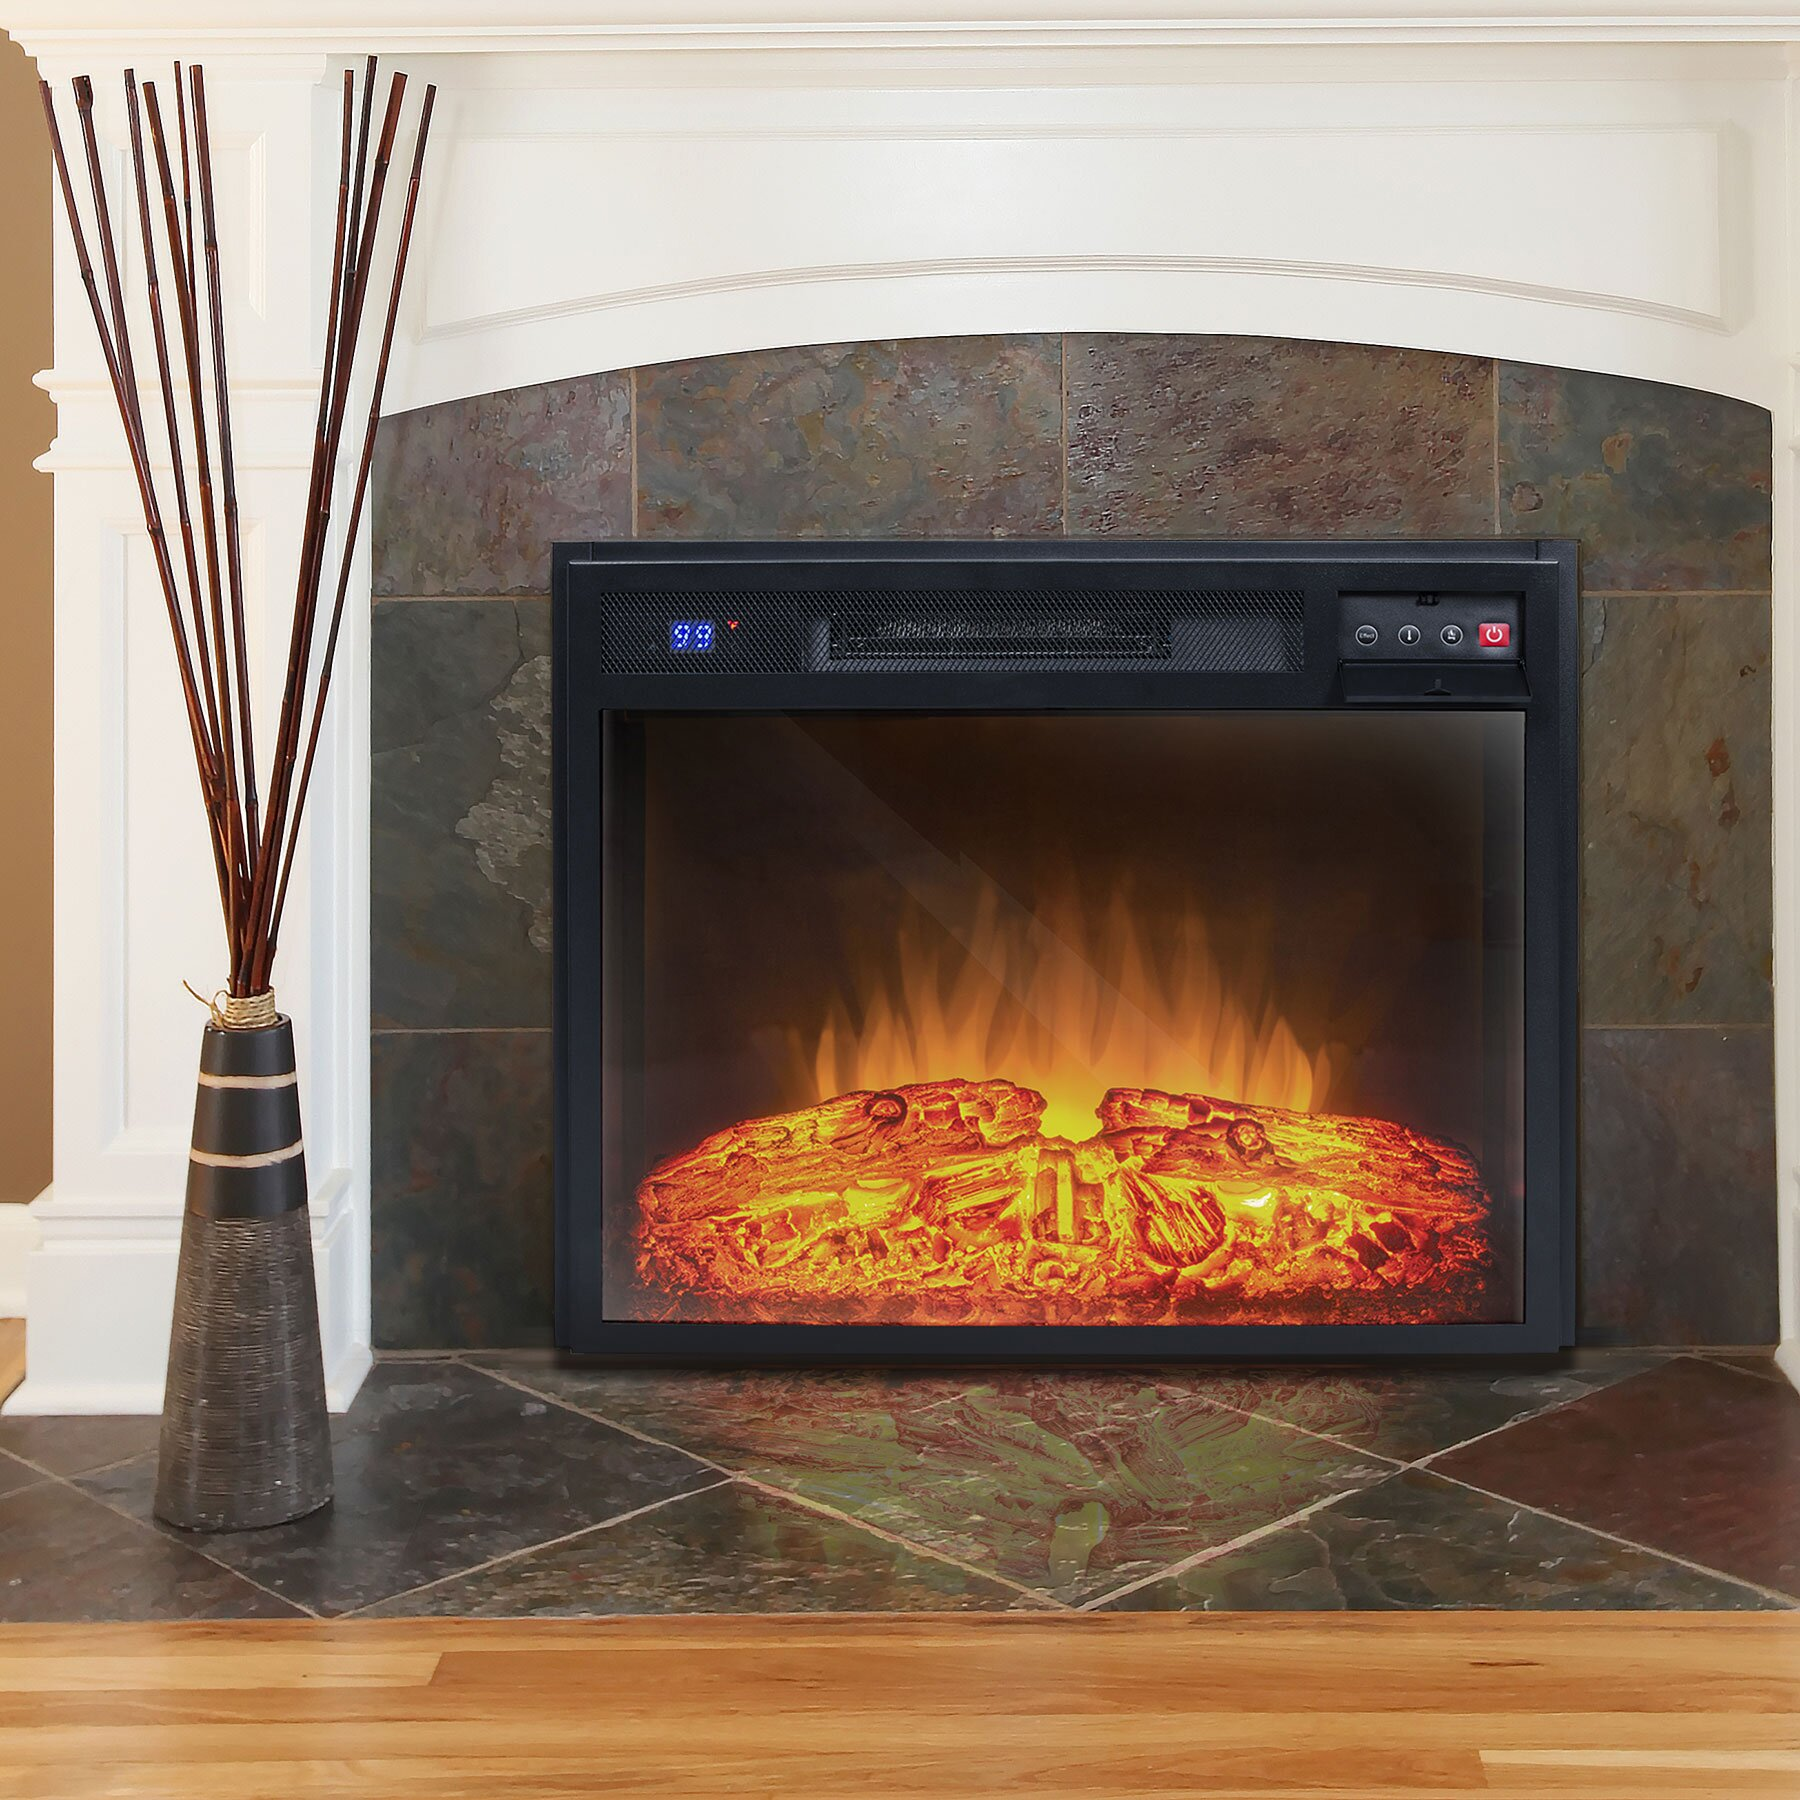 100 Fireplace Heater Electric Interior Design Electric Fire Gas Starter Fireplace Choice Image